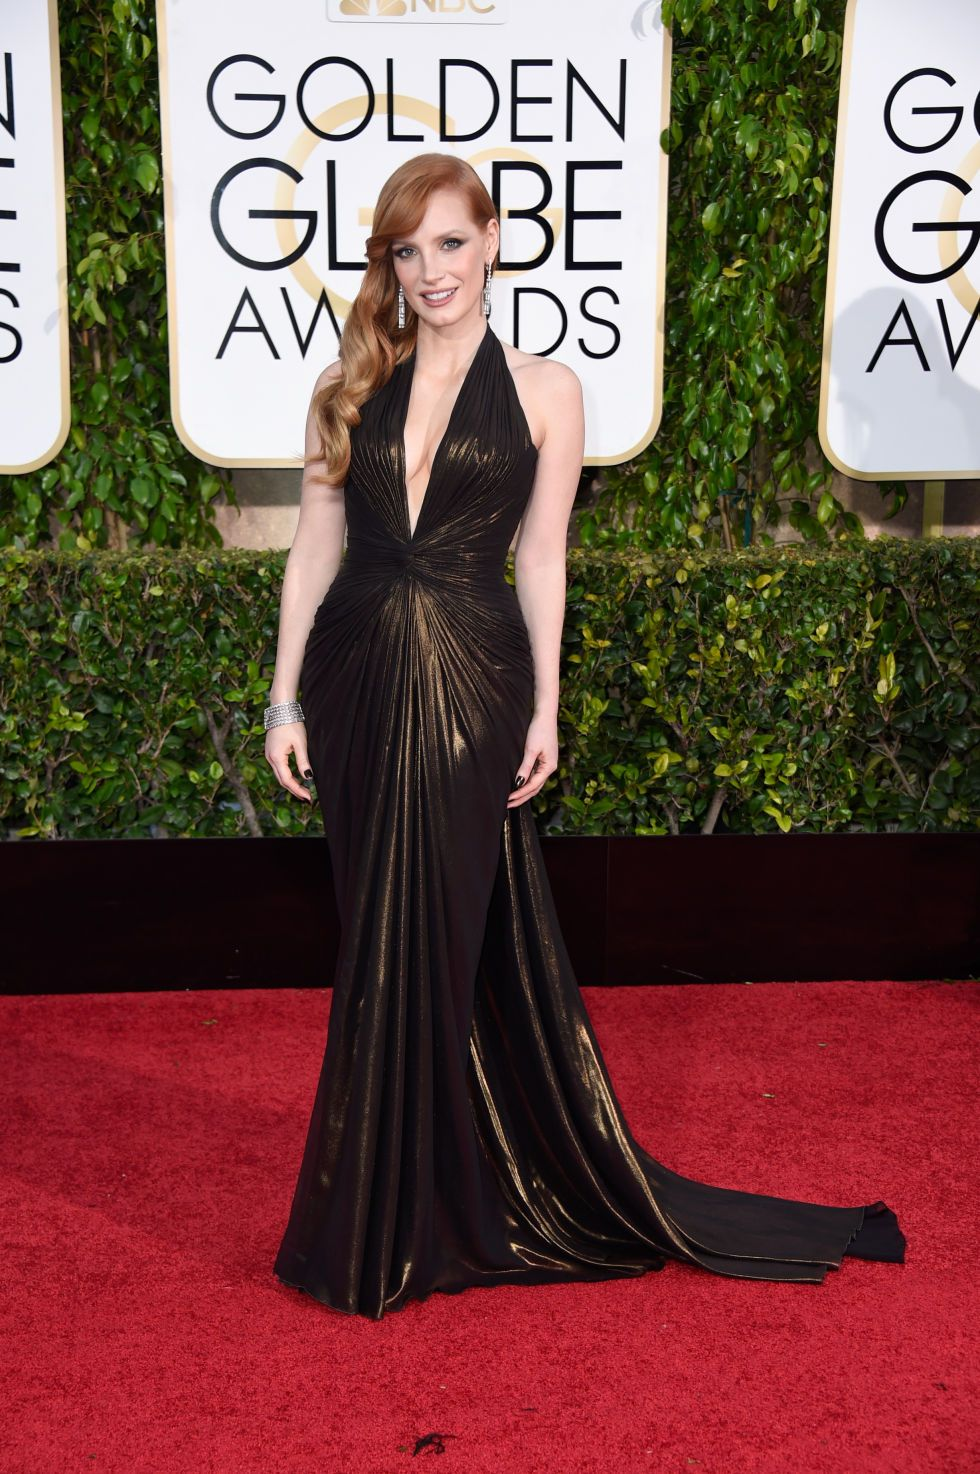 72nd Annual Golden Globe Awards - Beautiful Dress